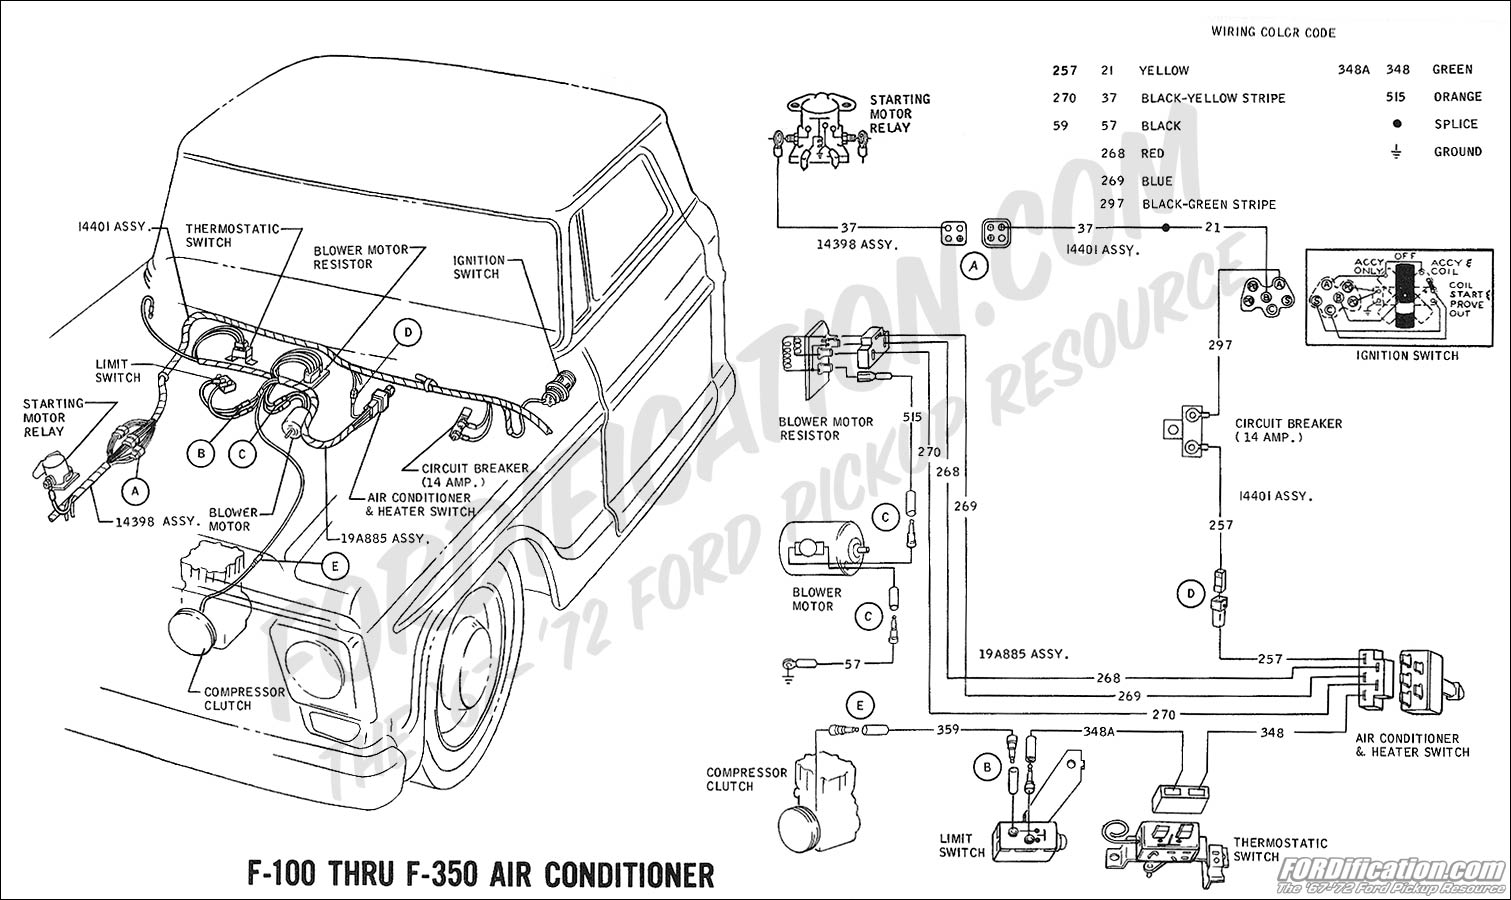 wiring_69ac 1983 ford f150 wiring diagram f150 alternator wiring diagram 07 f150 air conditioner wiring diagram at readyjetset.co